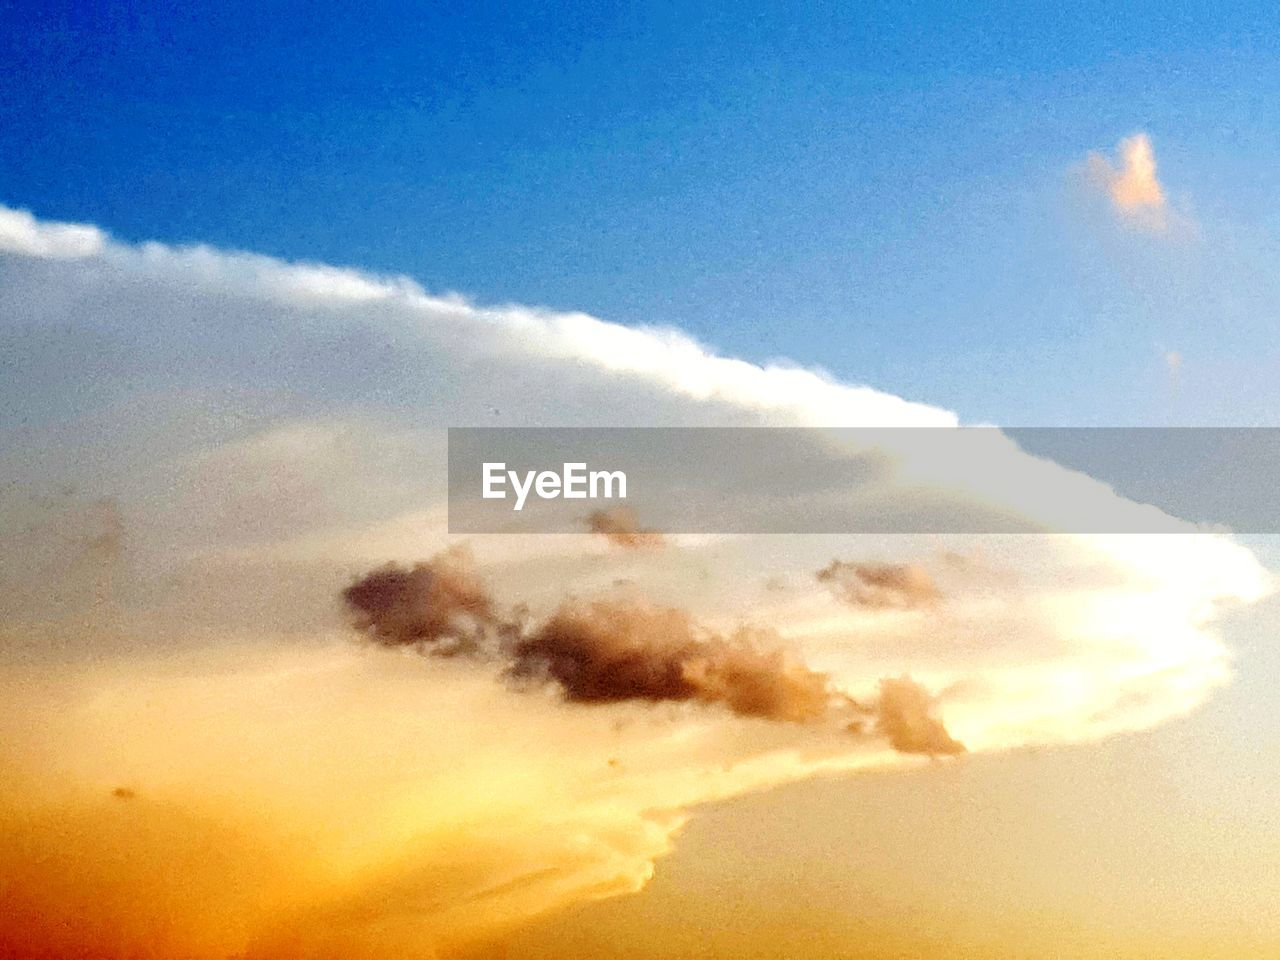 sky, nature, beauty in nature, cloud - sky, scenics, sky only, backgrounds, low angle view, tranquility, outdoors, sunset, tranquil scene, no people, full frame, day